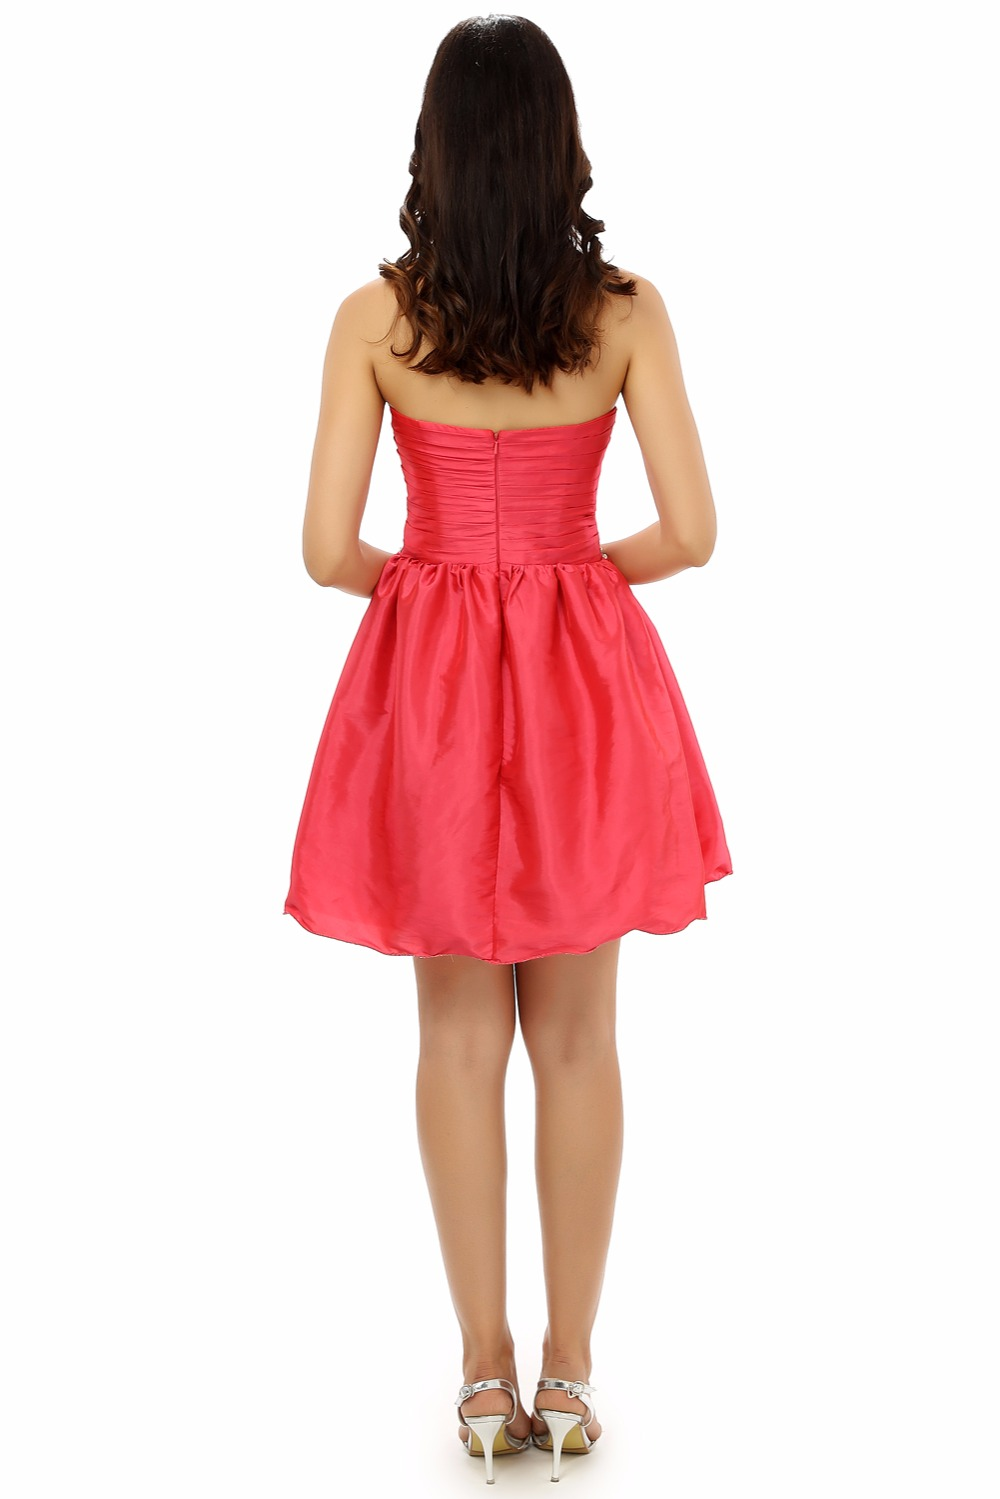 HSDYQ HOME Summer Red Sweetheart A-Line Homecoming Dresses Simple Crystal Off the Shoulder Mini Party dress